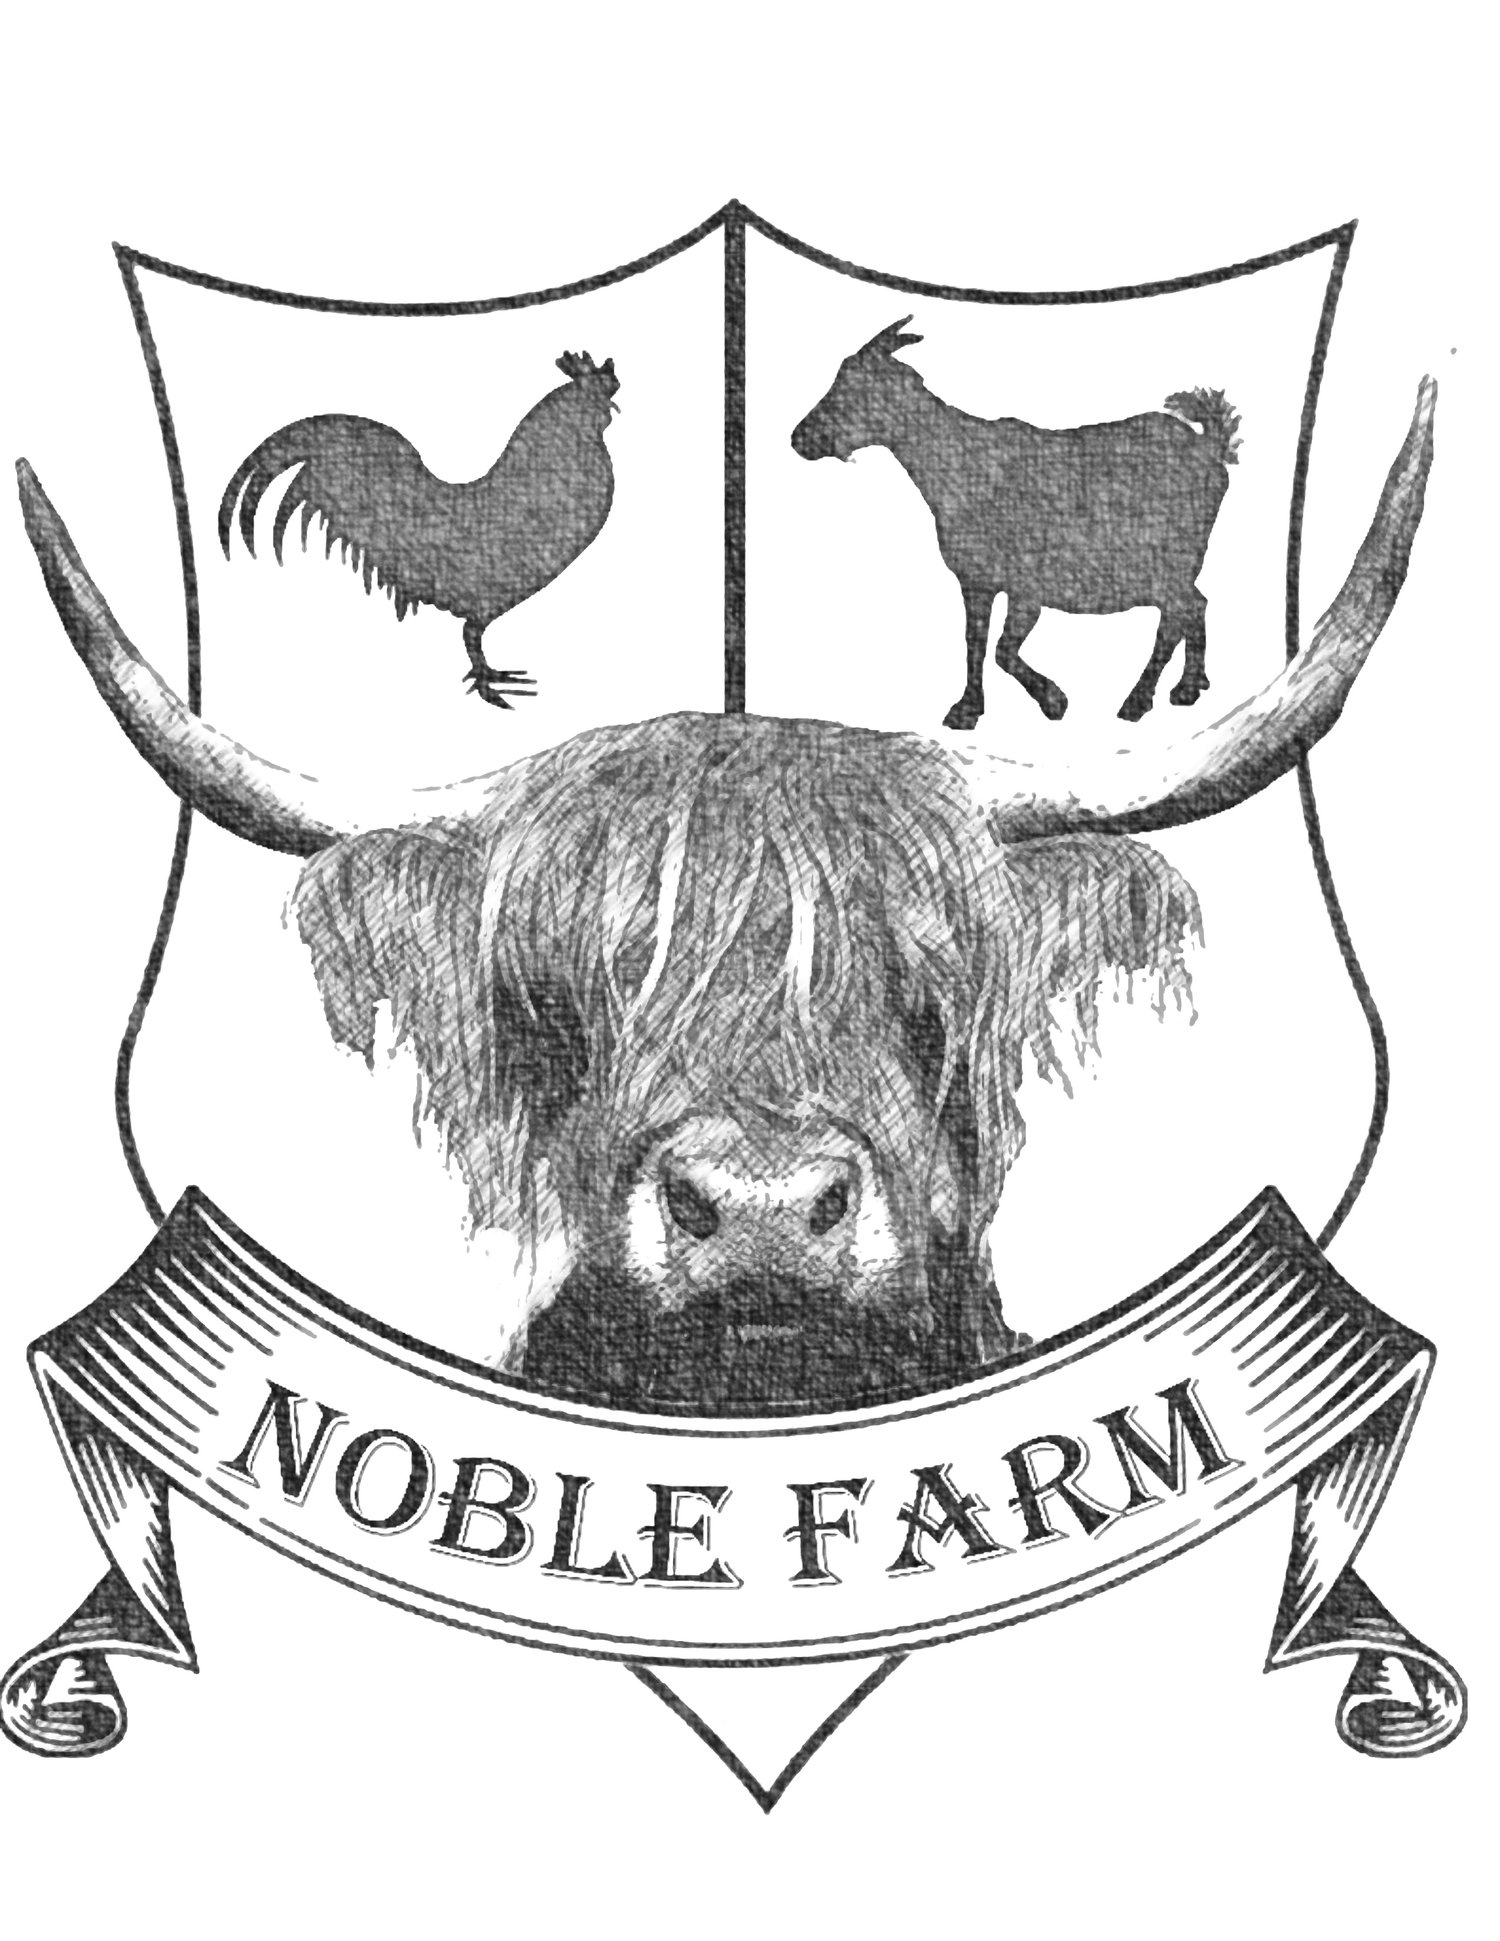 Noble Farm No Bull